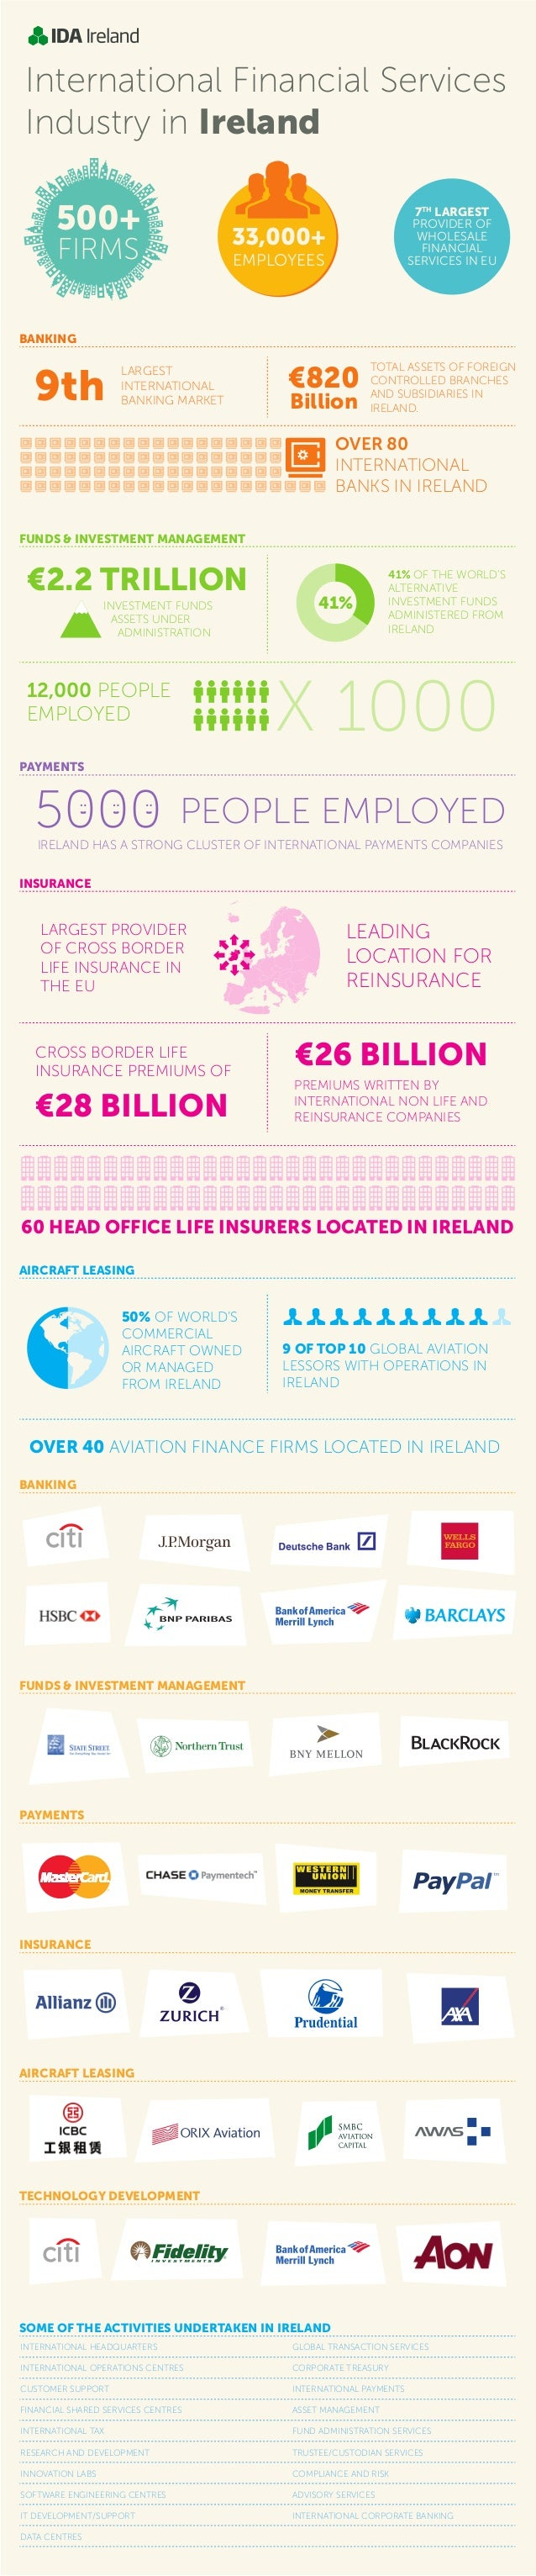 International Financial Services Industry in Ireland - Infographic